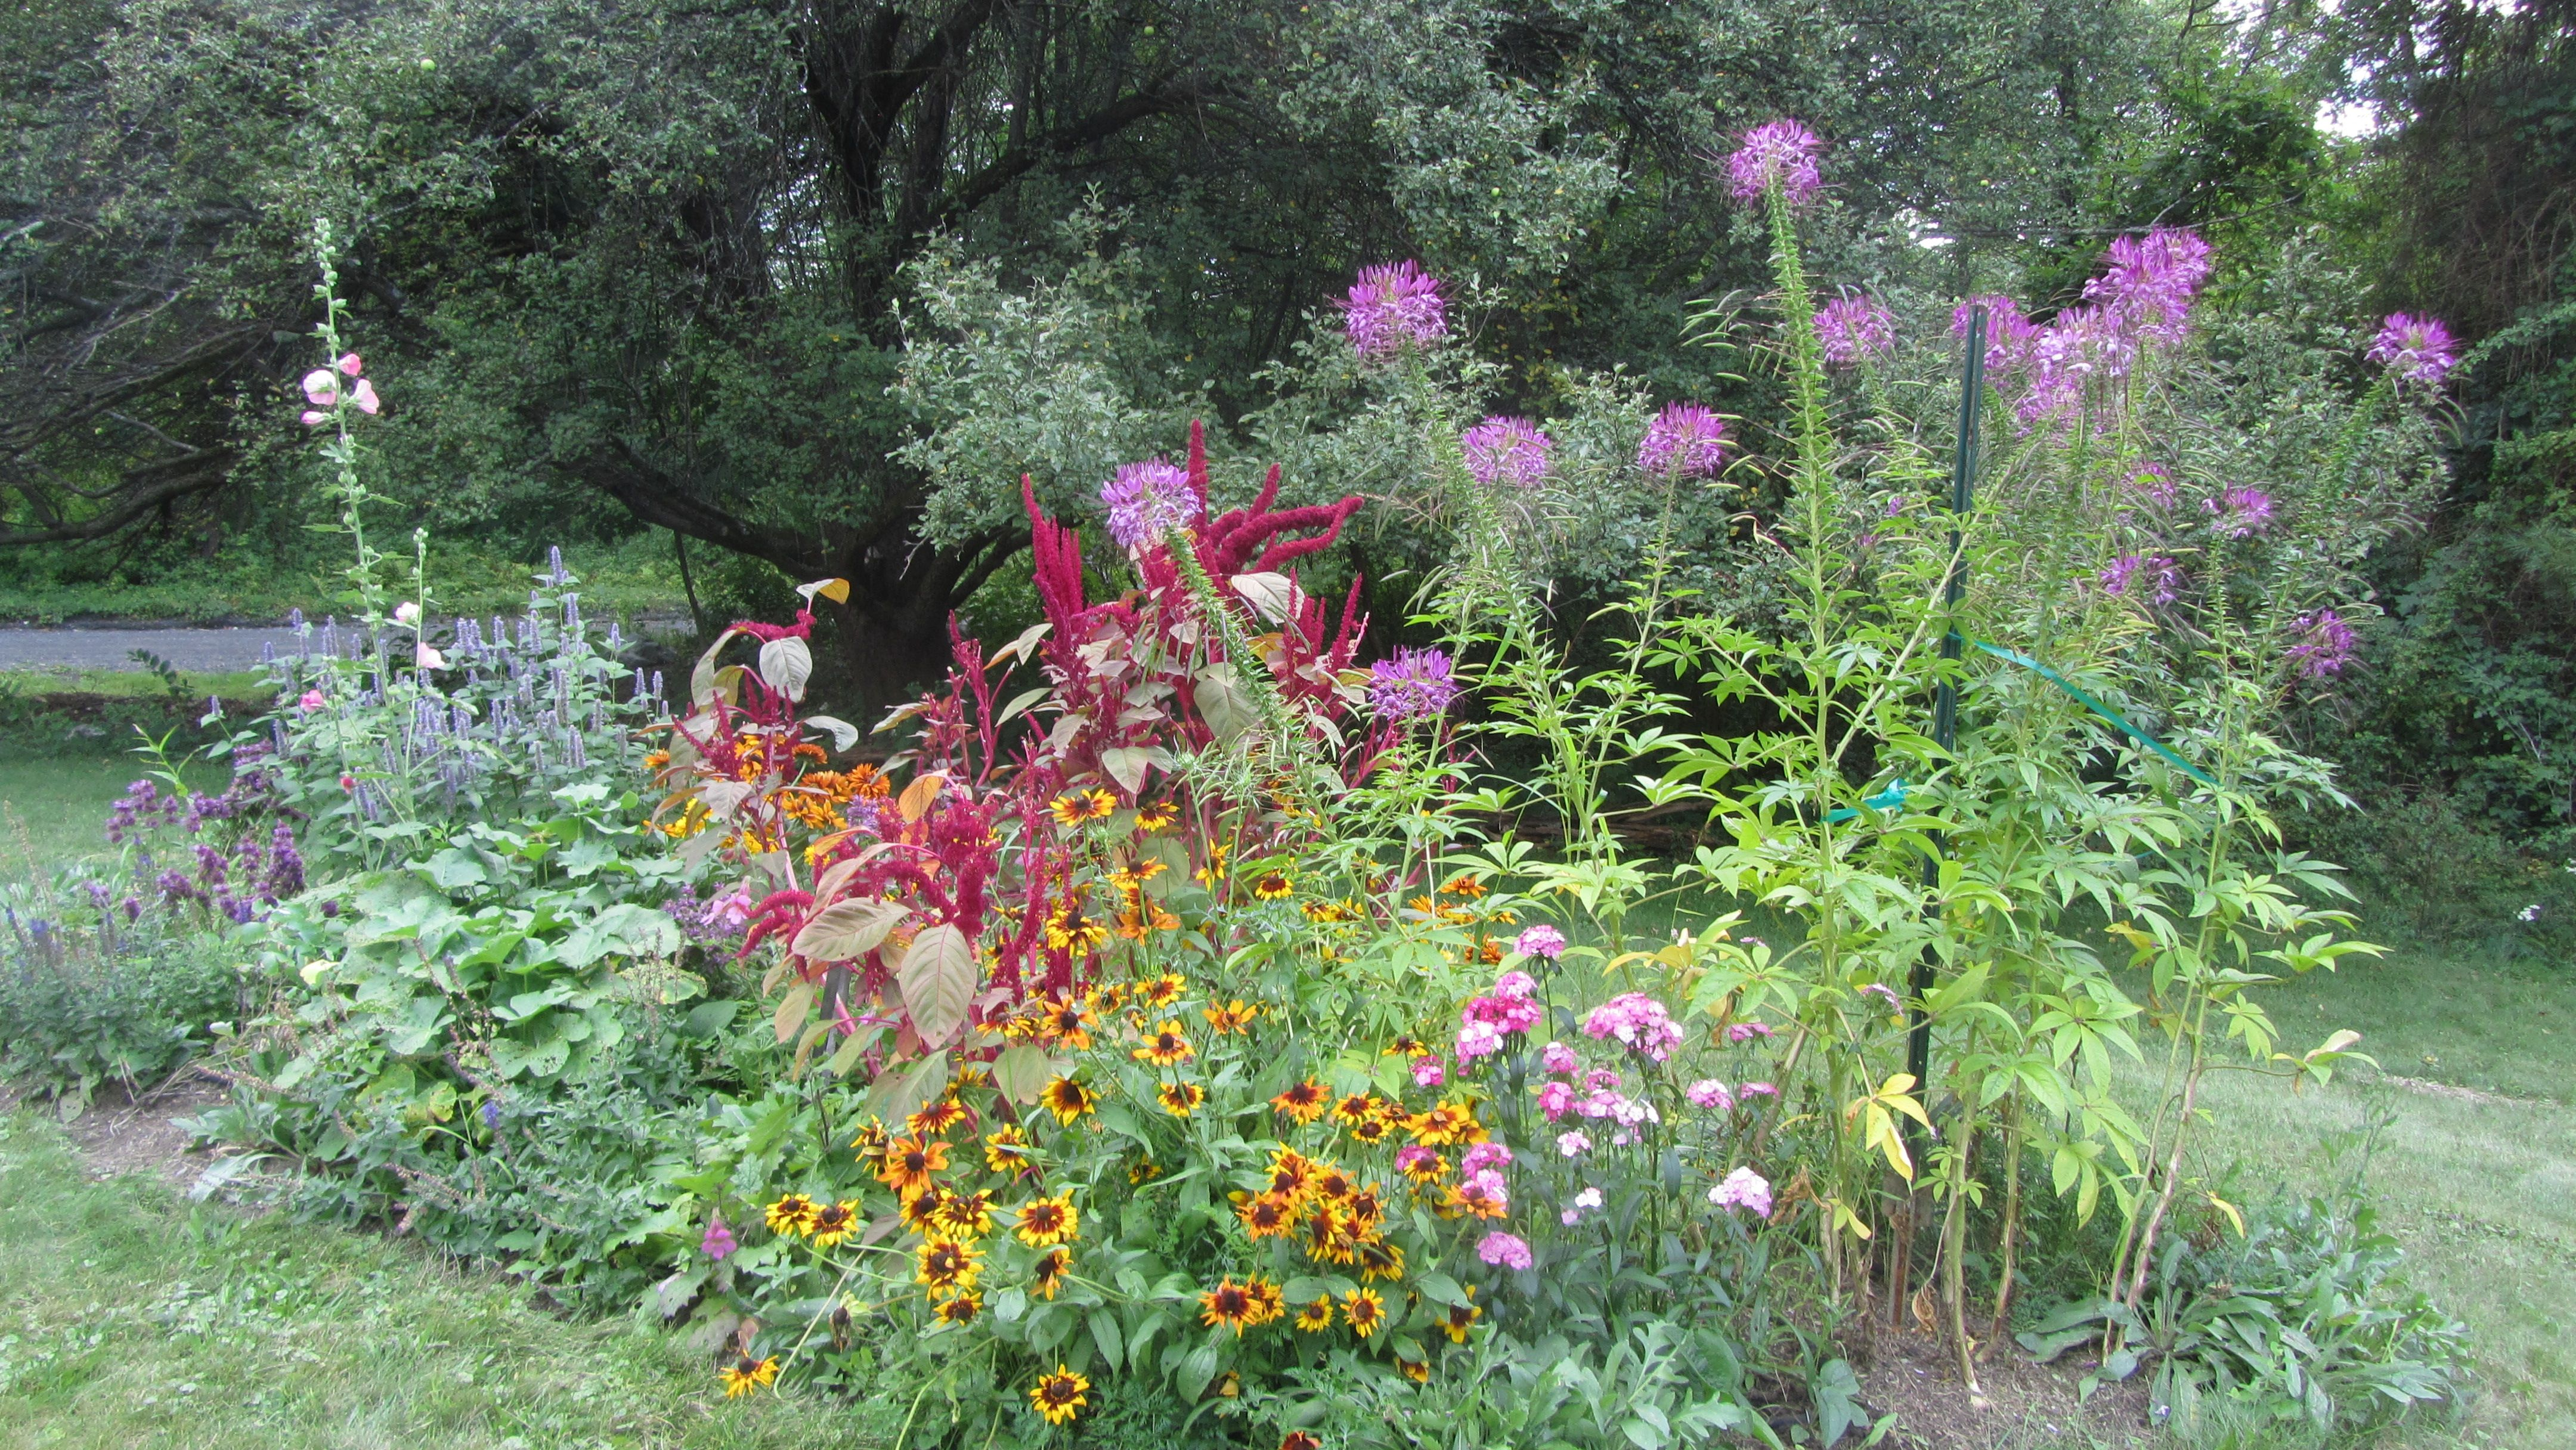 Flowerbed A July 2015